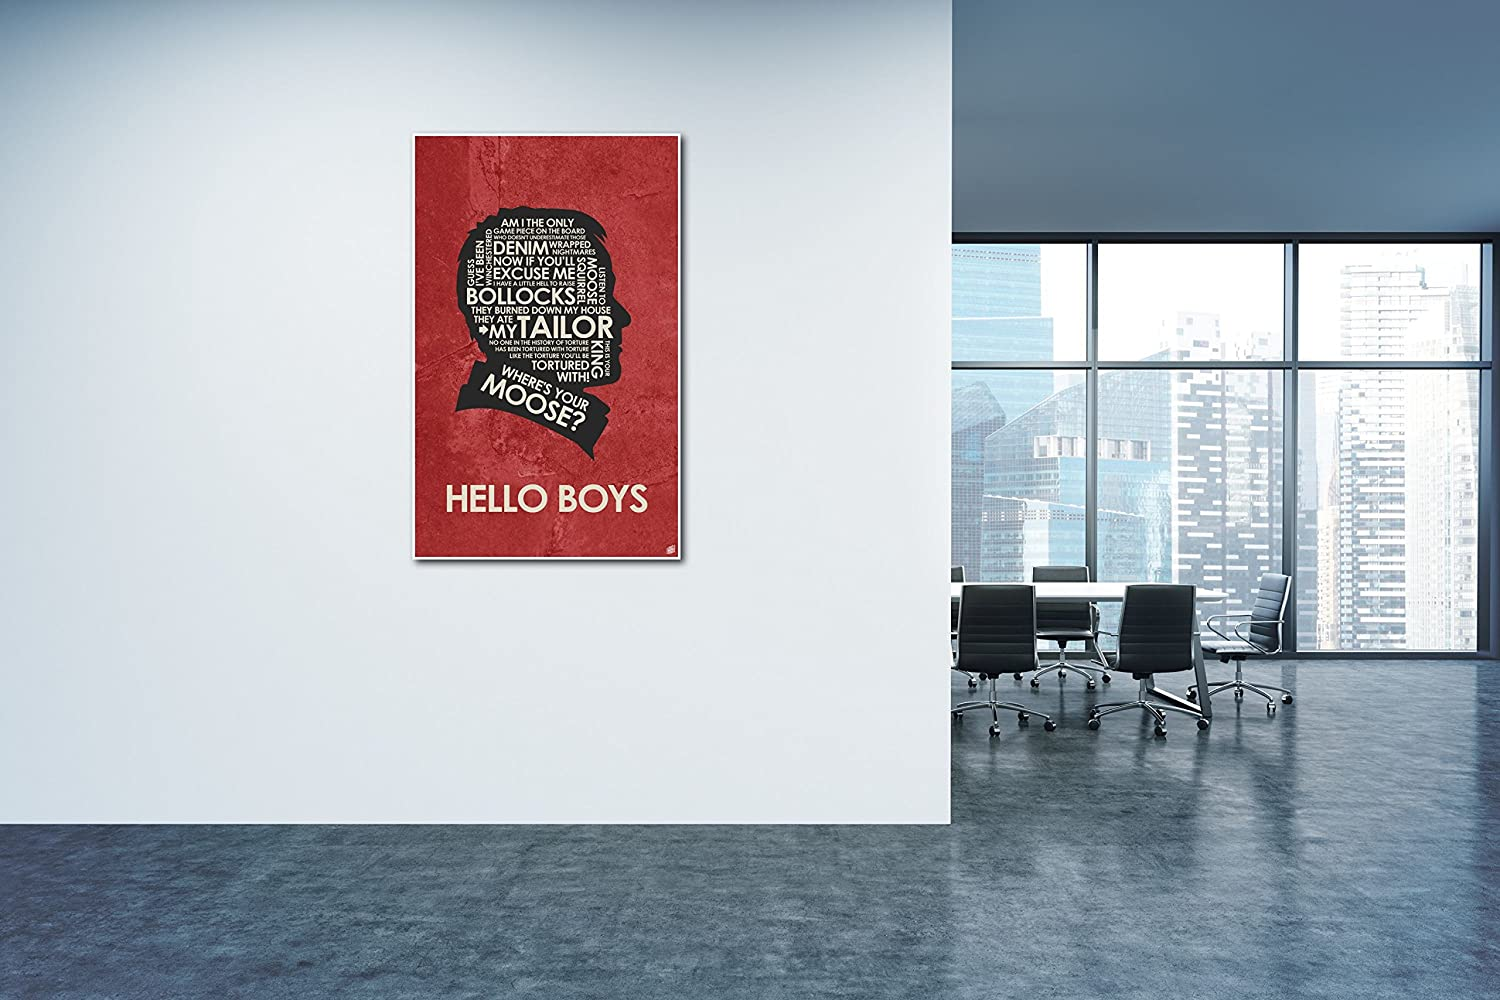 12 x 18 Crowley: Hello Boys Word Art Print Poster Supernatural by Artist Stephen Poon.